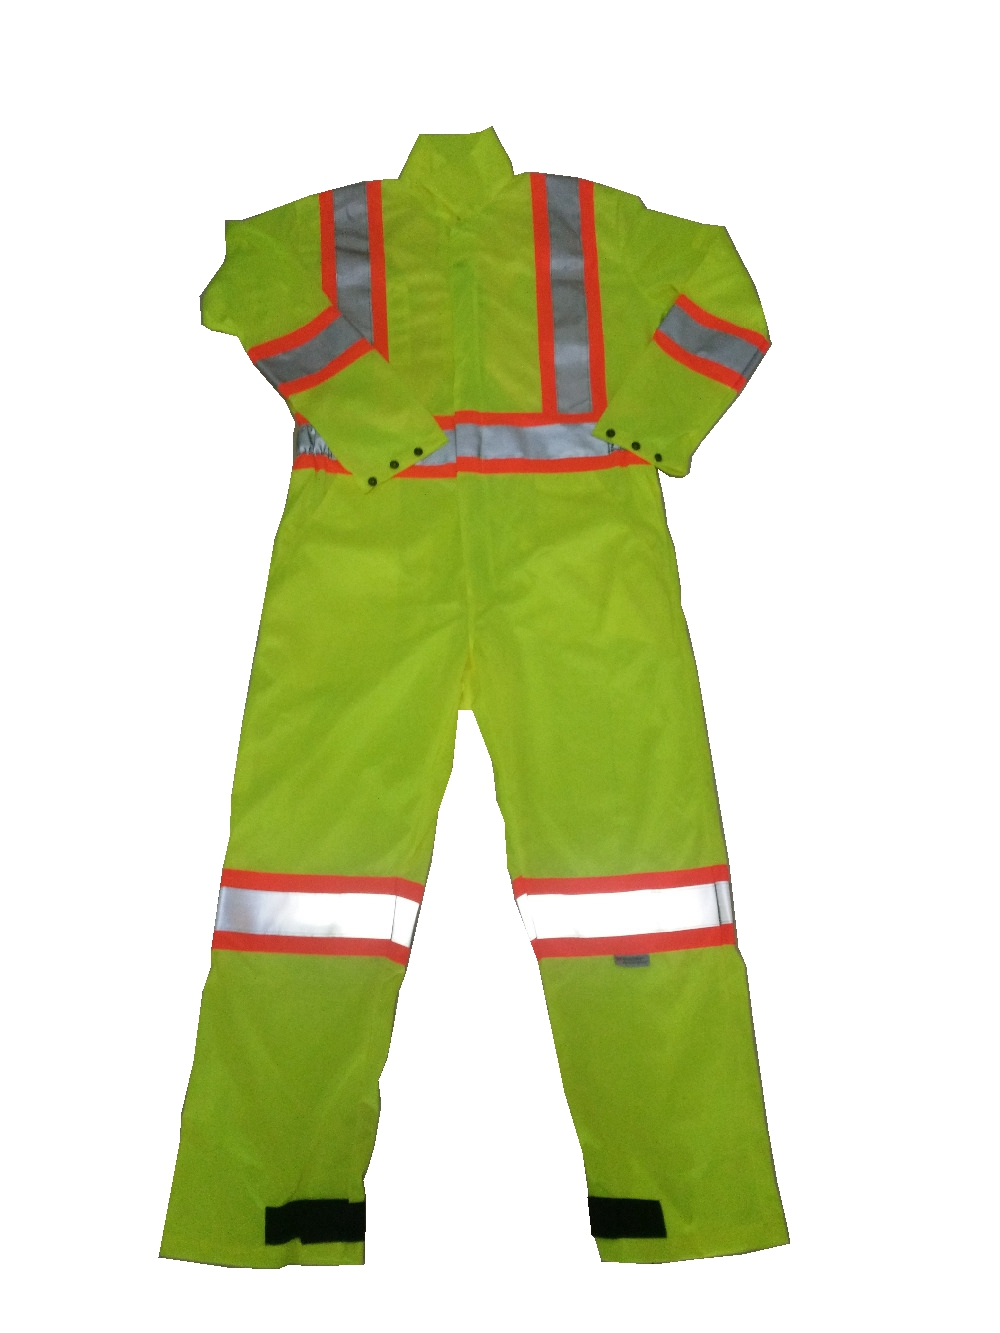 Fluorescence Yellow High Visibility Safety workwear Hi Viz Work Coat coverall workwear coveralls suits умница развивающий комплект говорим с пелёнок